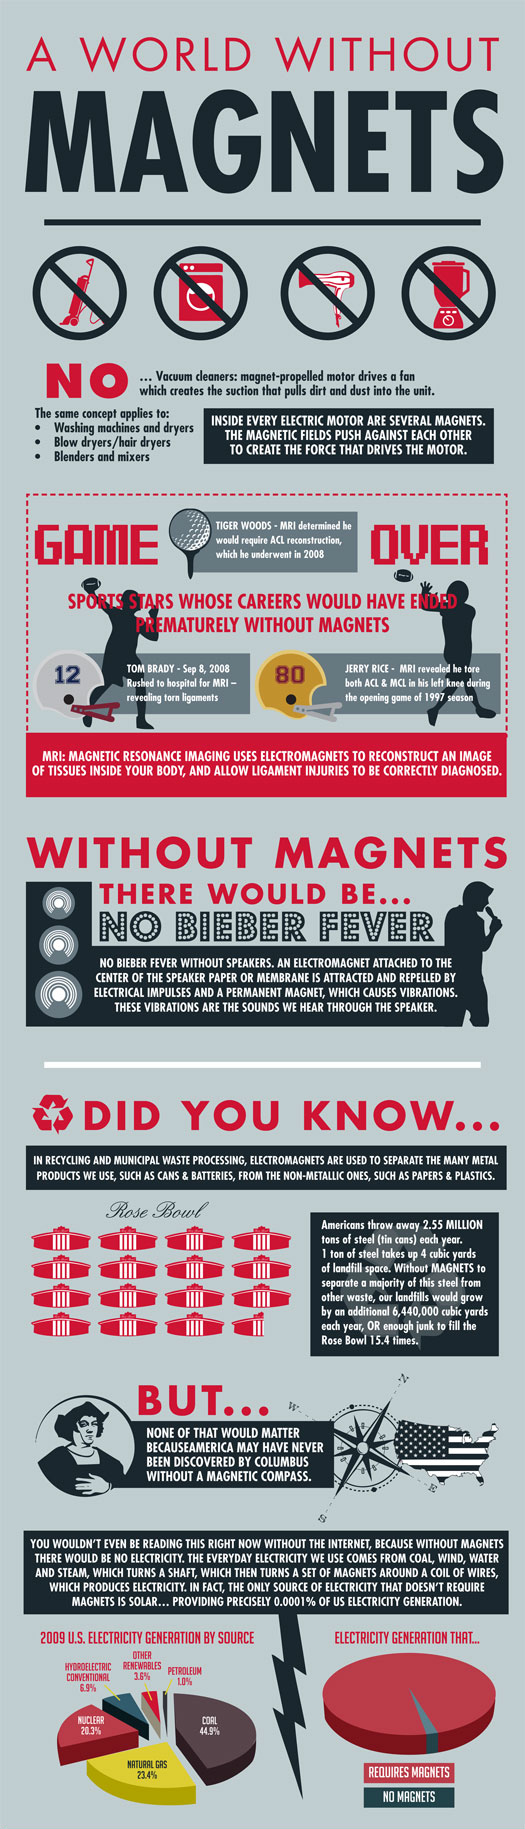 Magnets Move our World-Infographic